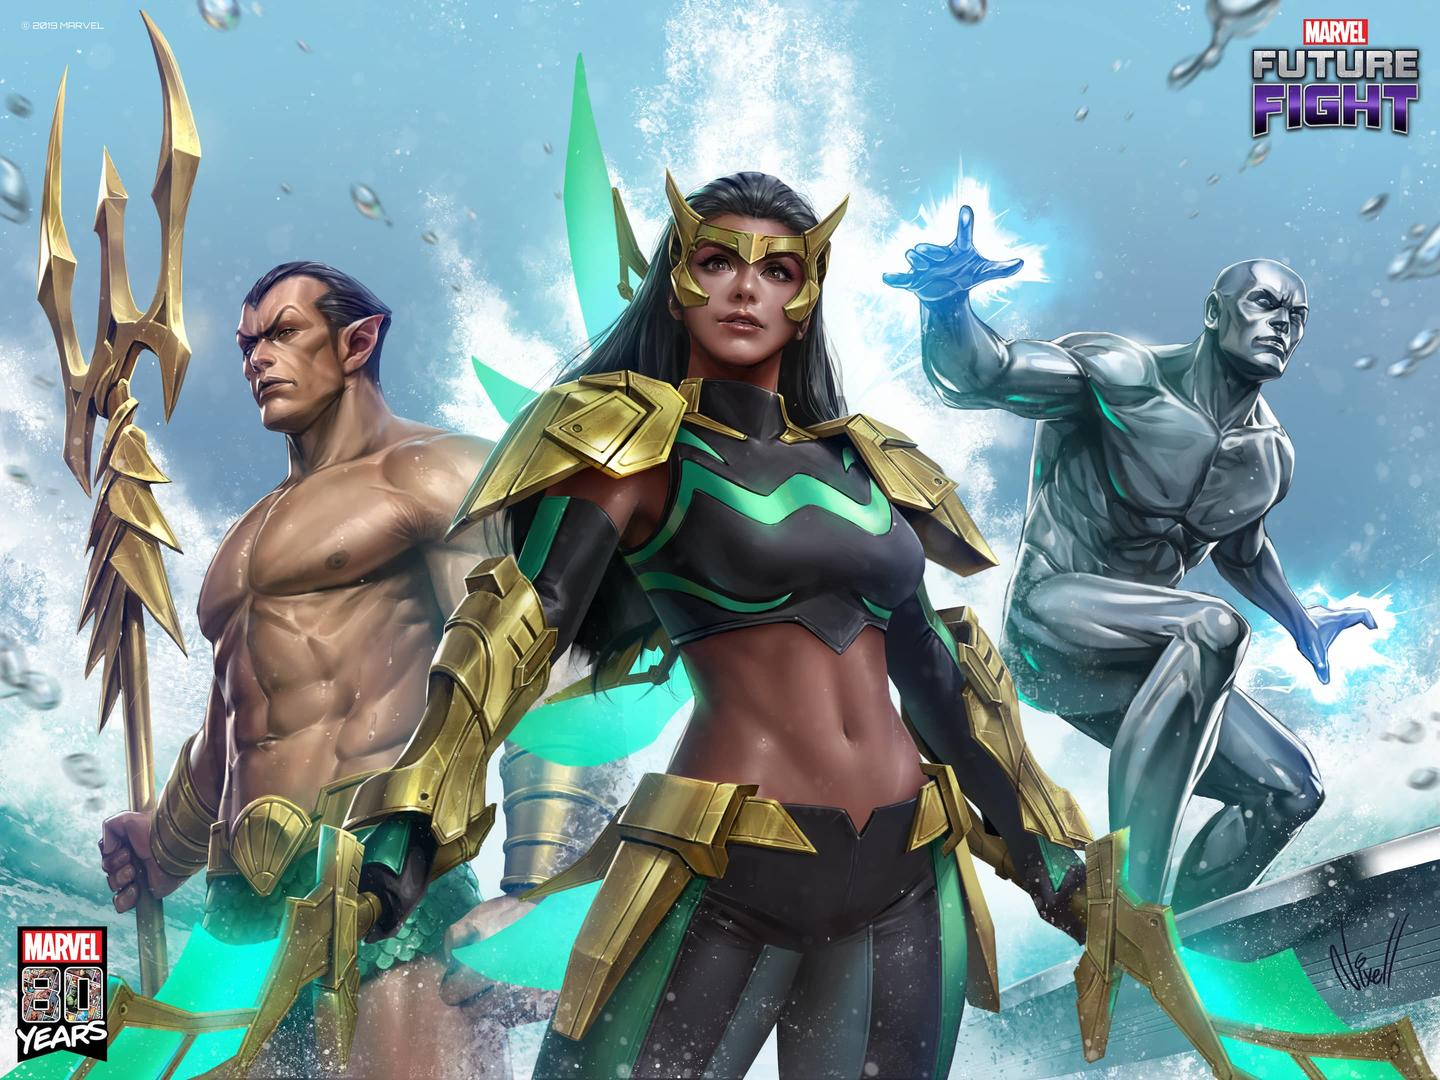 Filipina Super Hero Wave Joins Silver Surfer and Namor in 80th